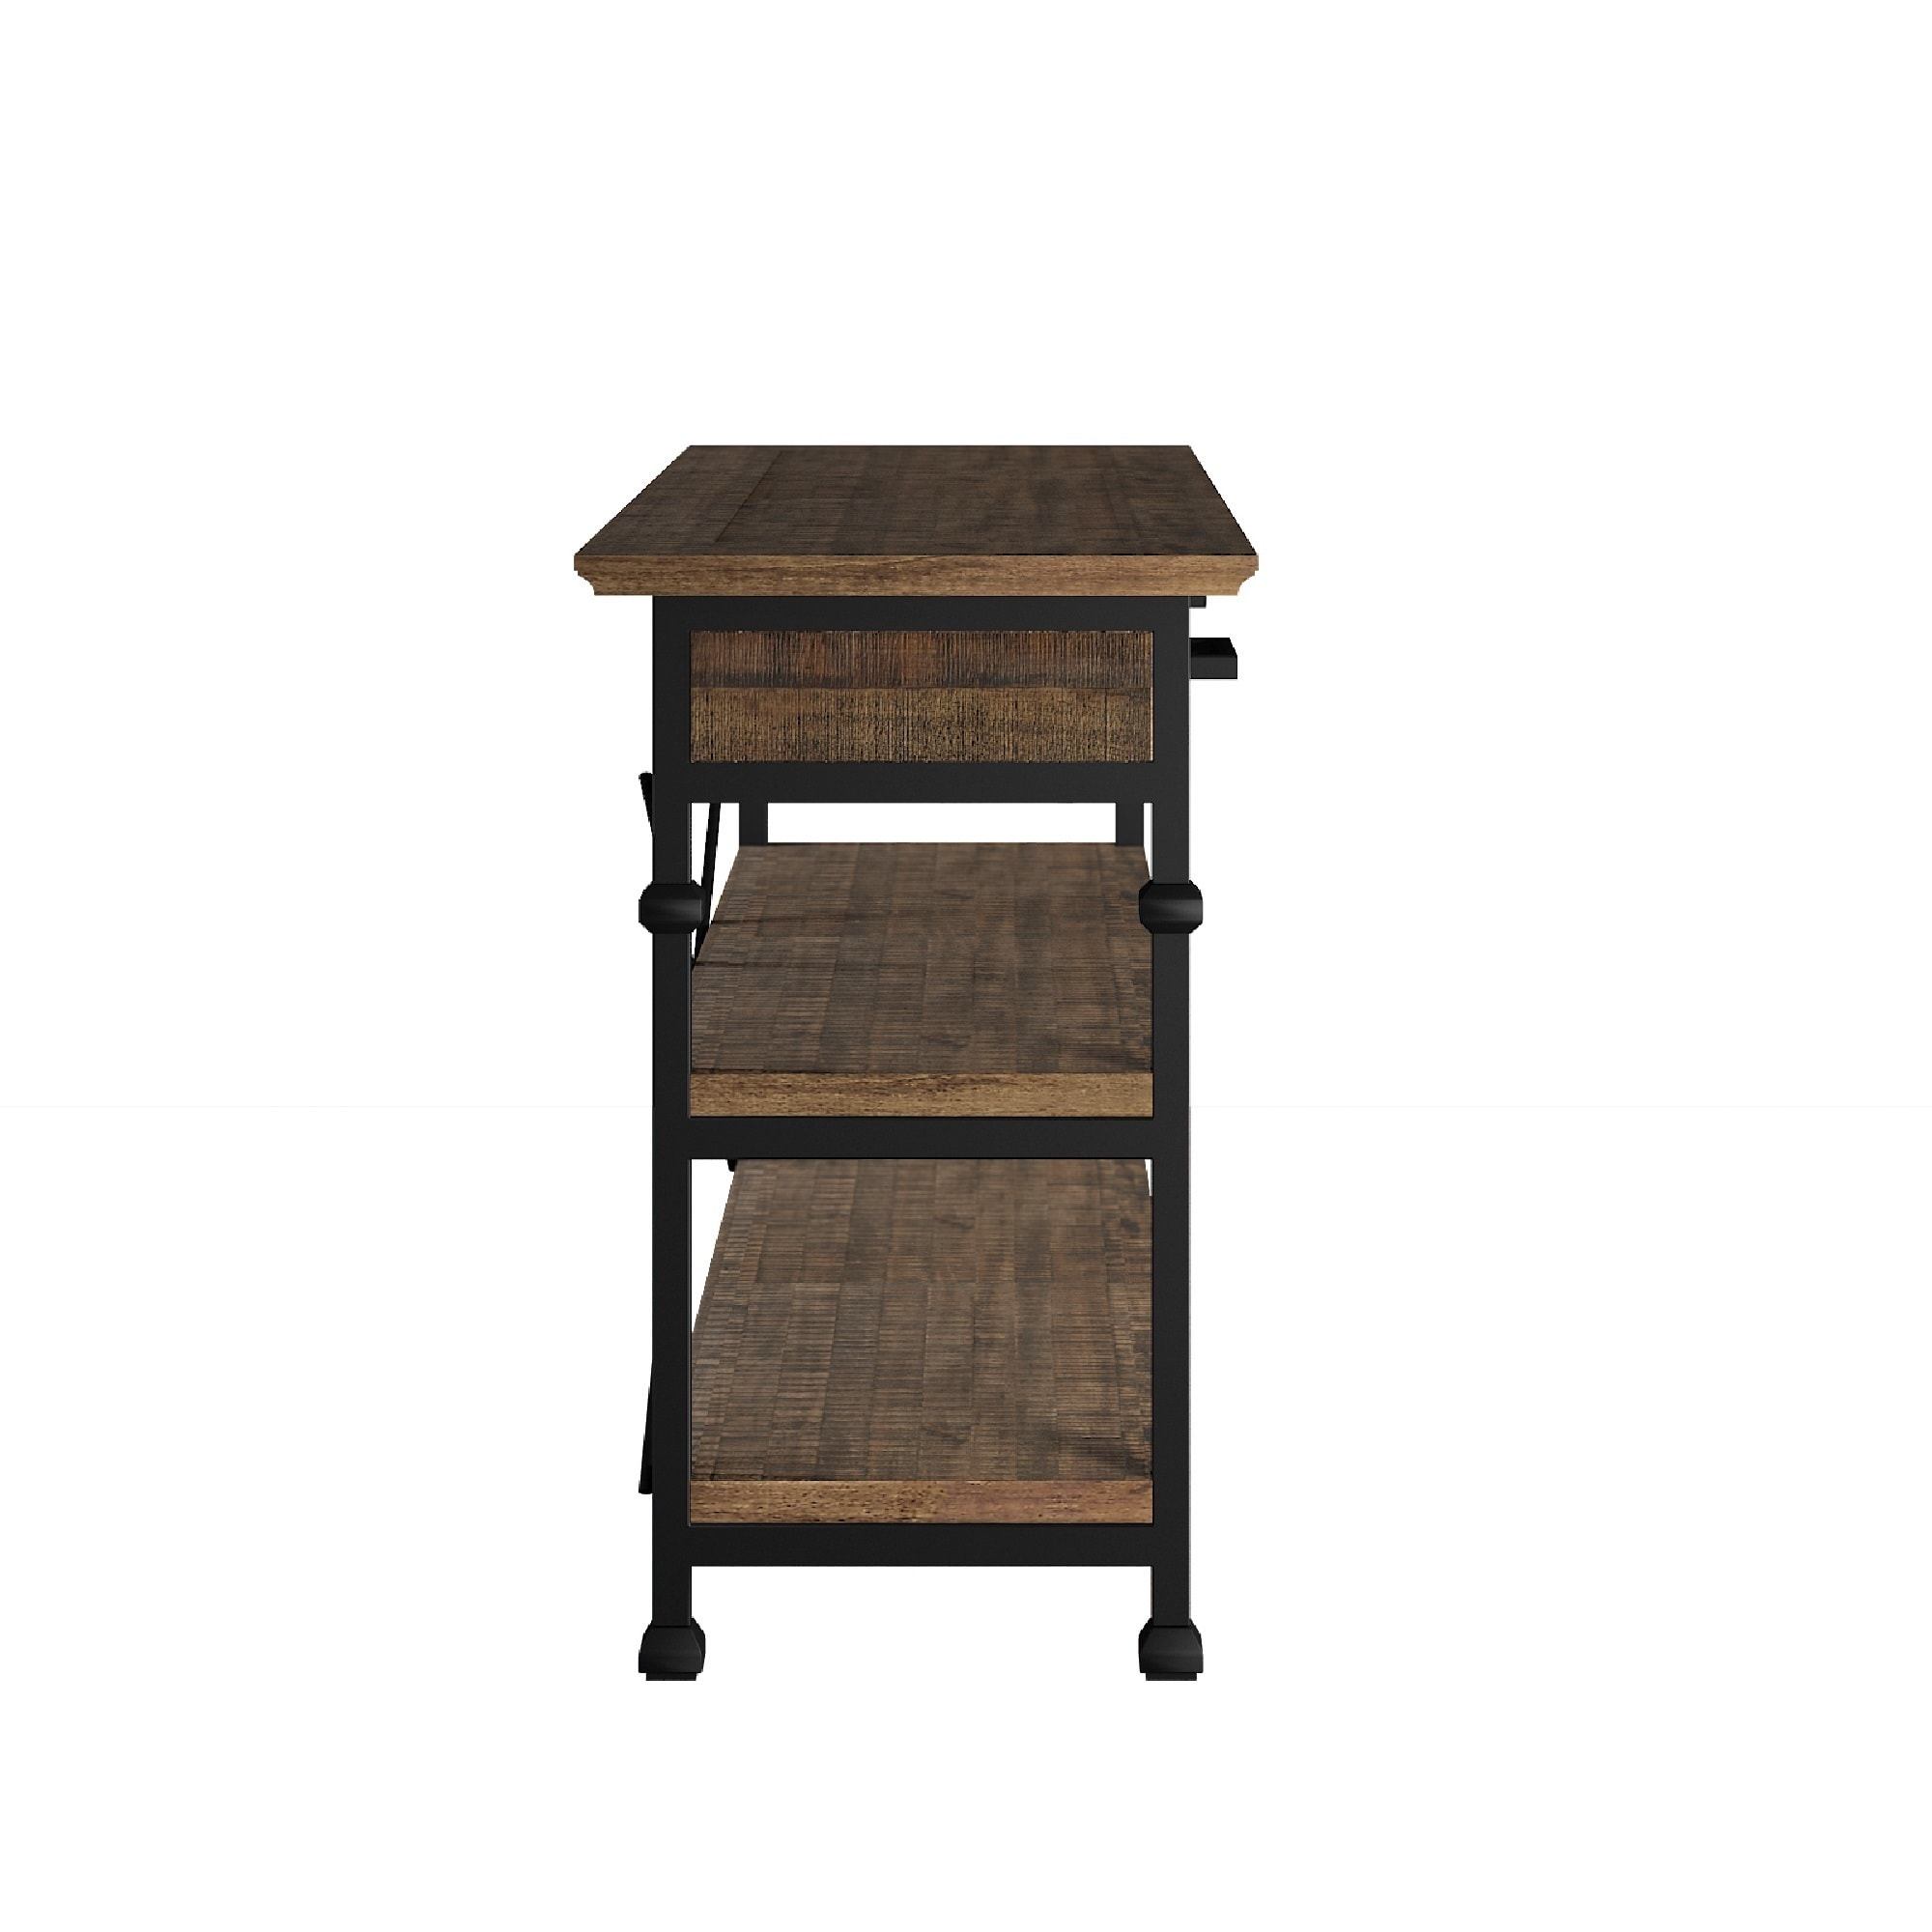 Myra Vintage Modern Rustic Media Tv Stand Console By Inspire Q Clic On Free Shipping Today 13678331